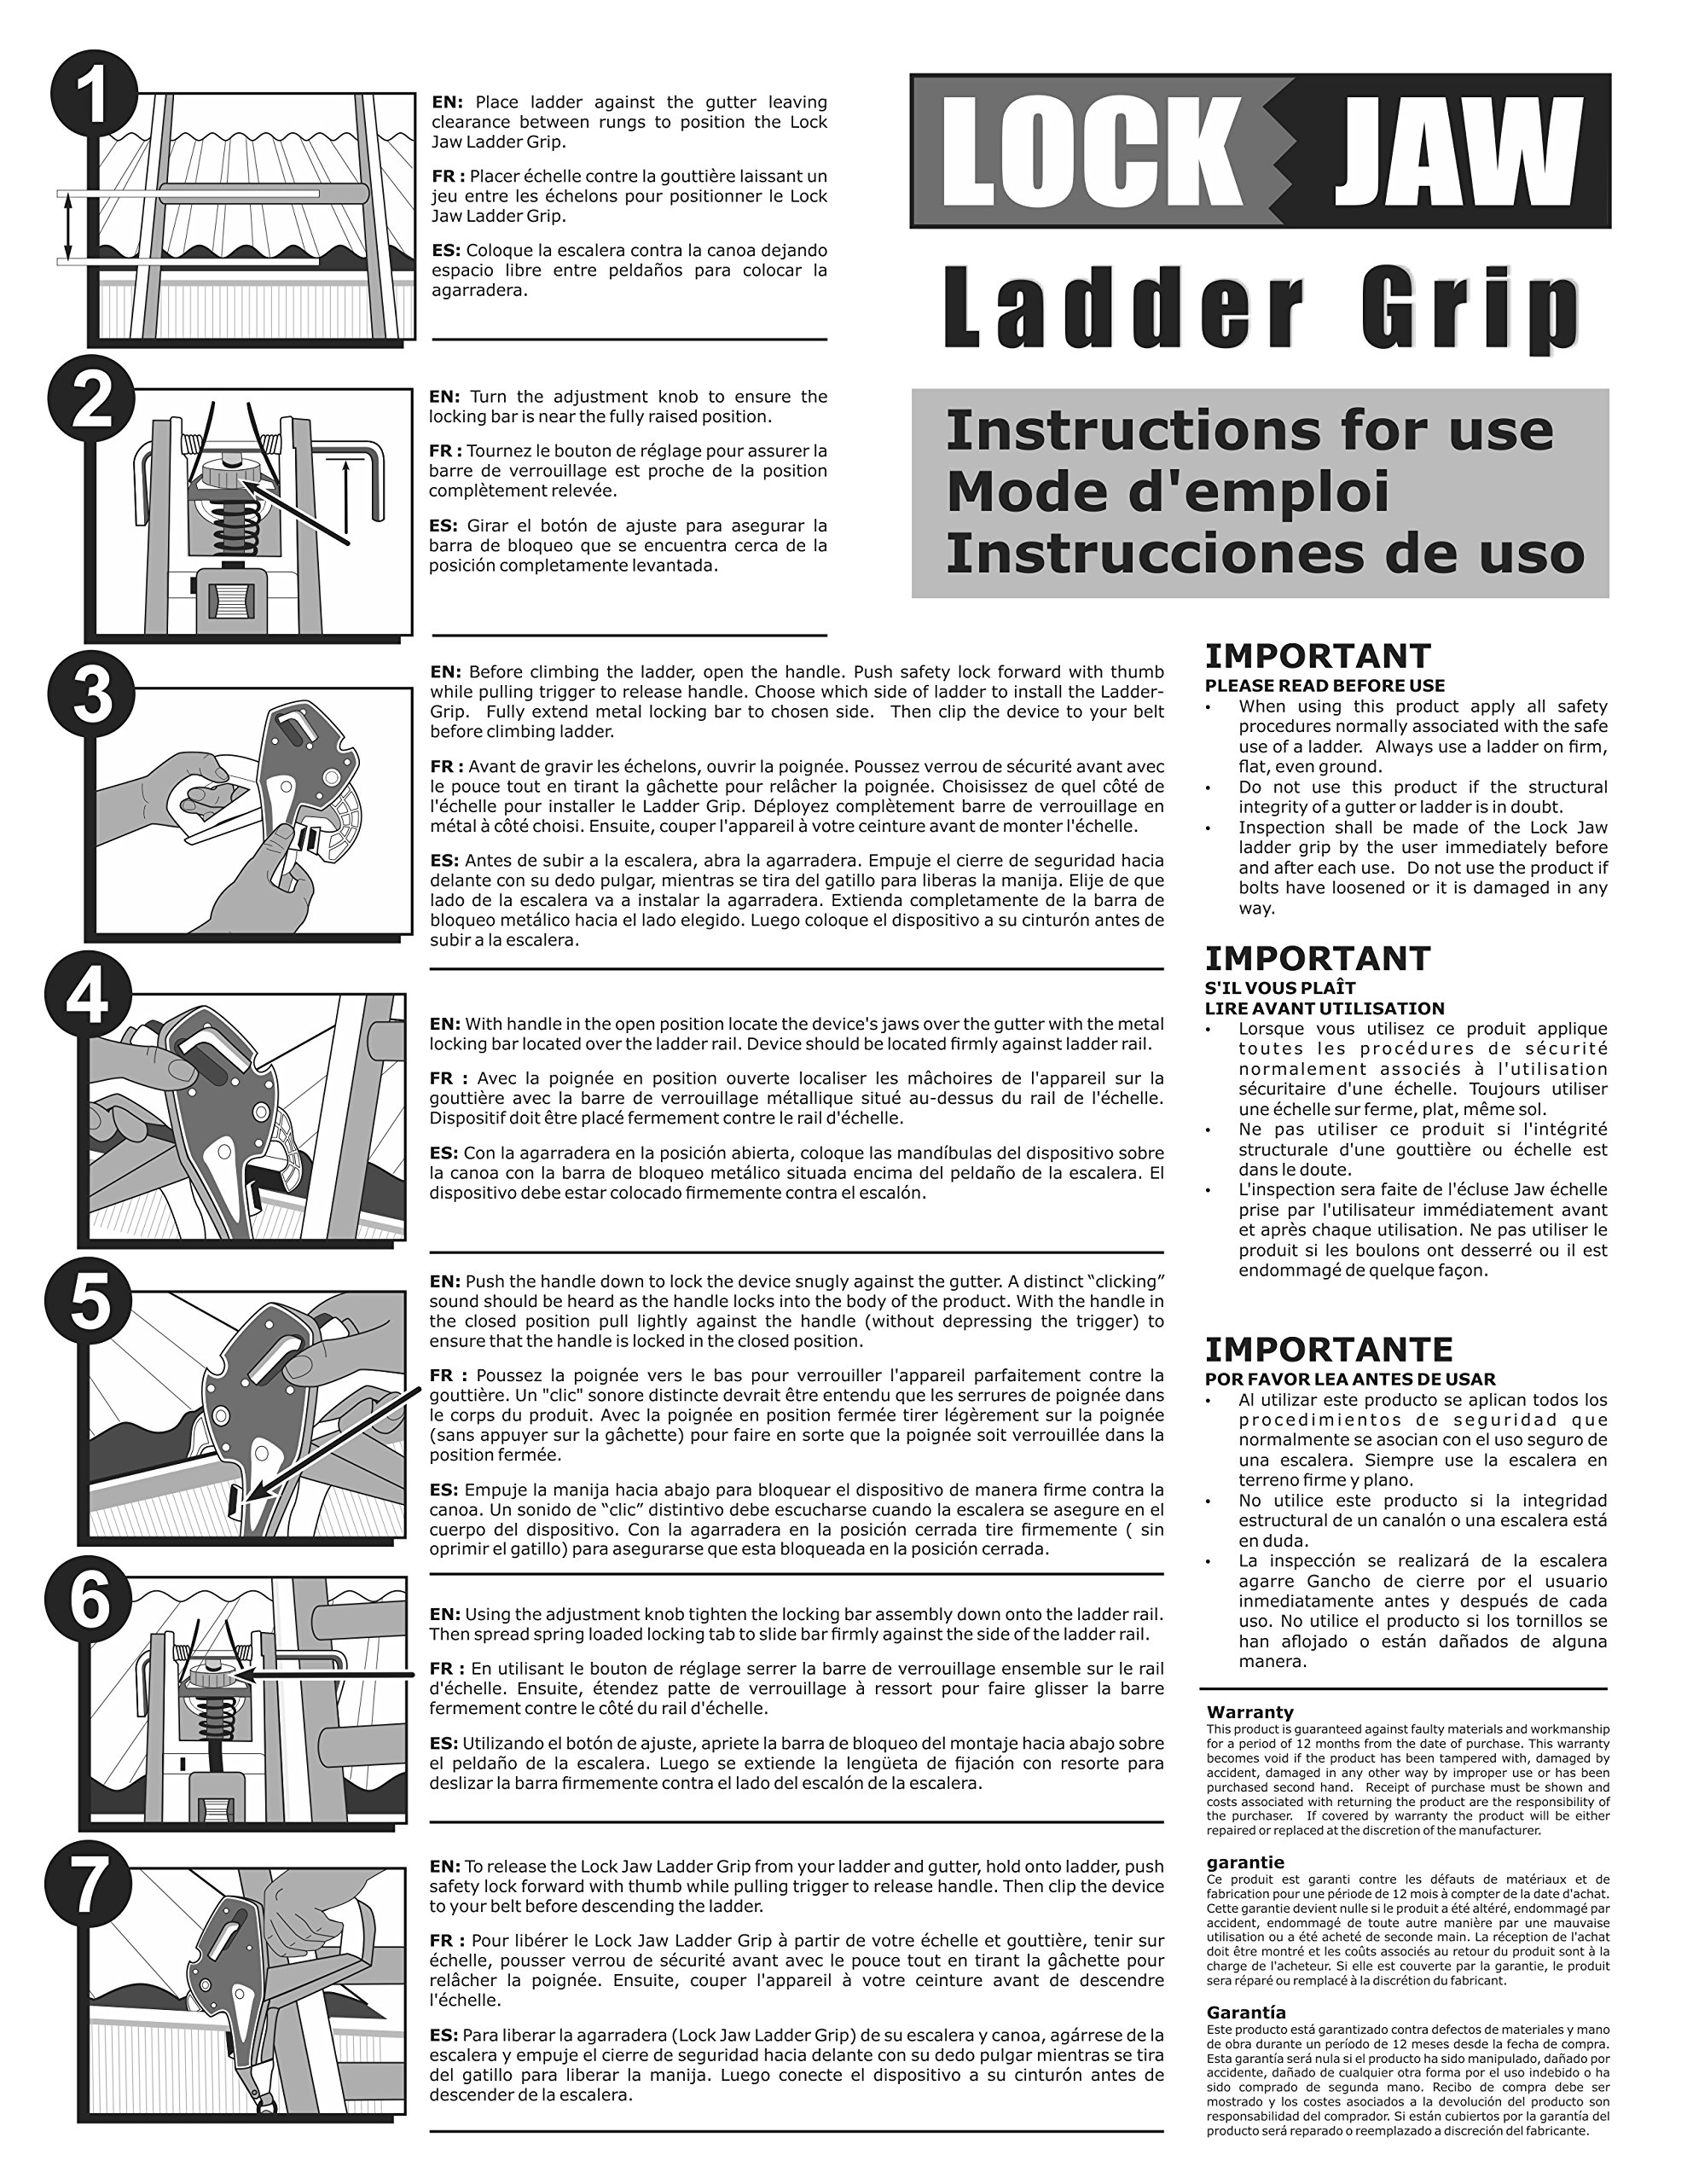 Lock Jaw Ladder Grip - Ladder Safety Clip - Feel secure on your ladders and climb safer